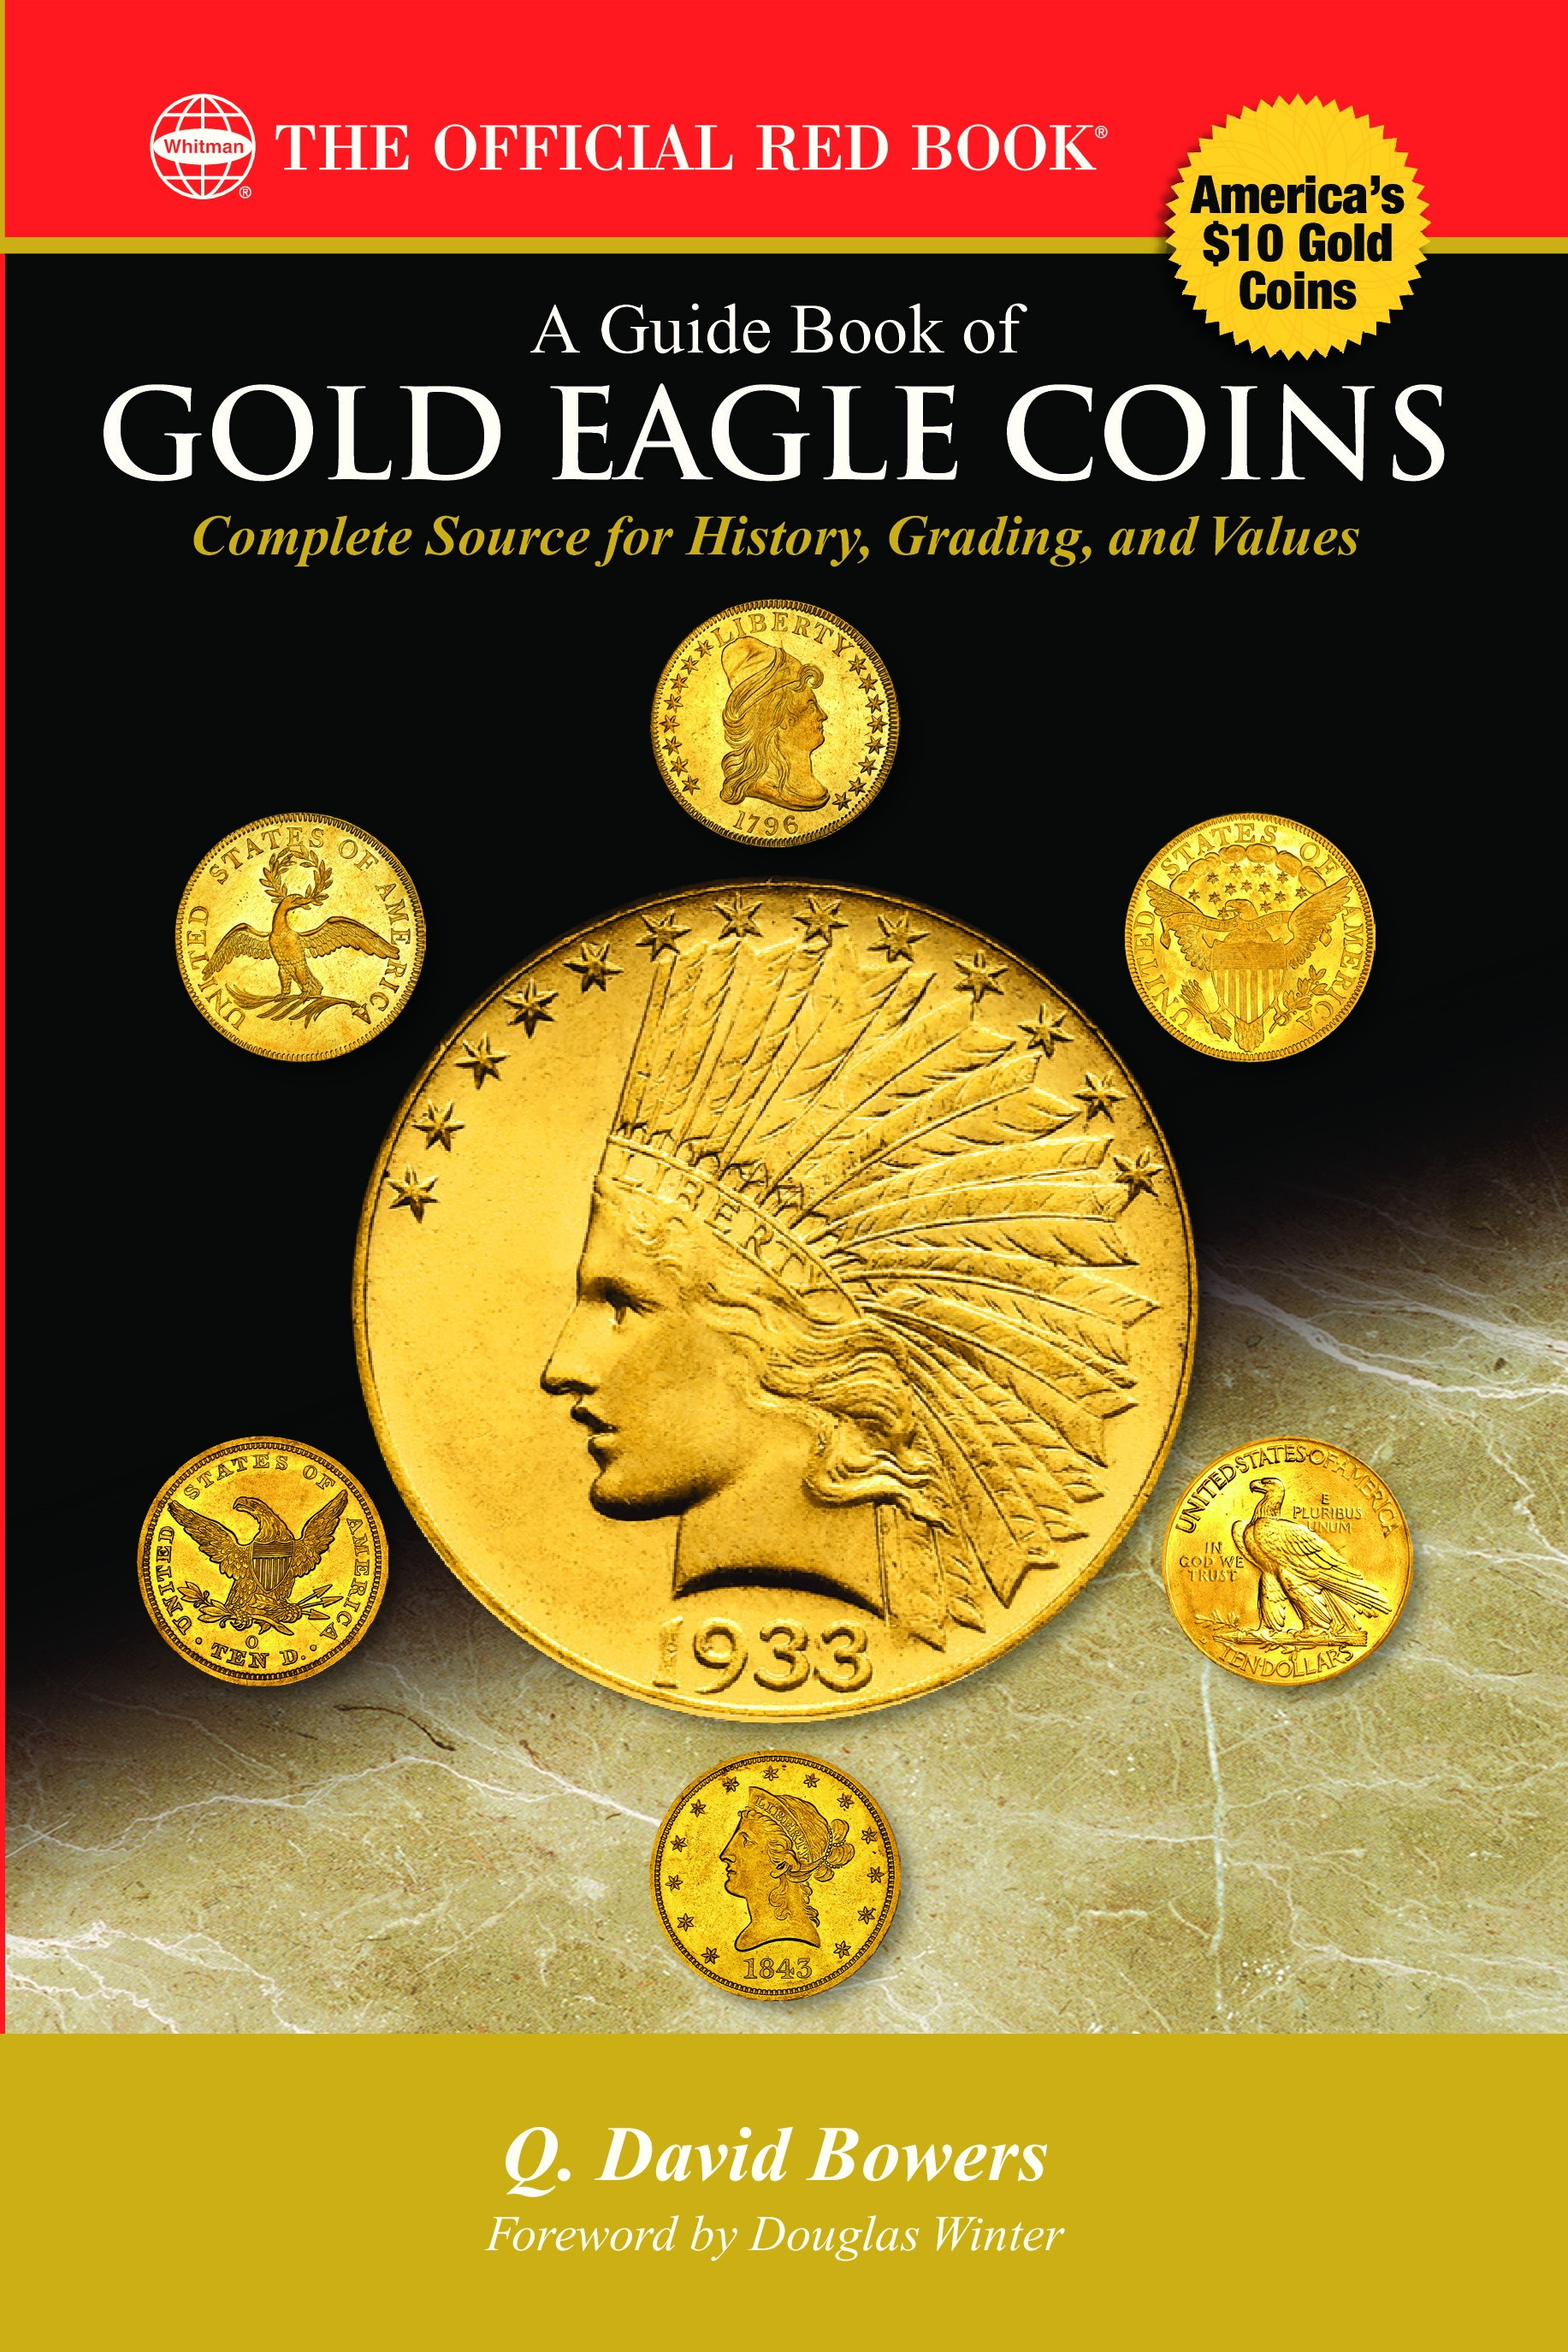 thumbnail image for PRESS RELEASE: Dave Bowers, Books, and America's $10 Gold Coins